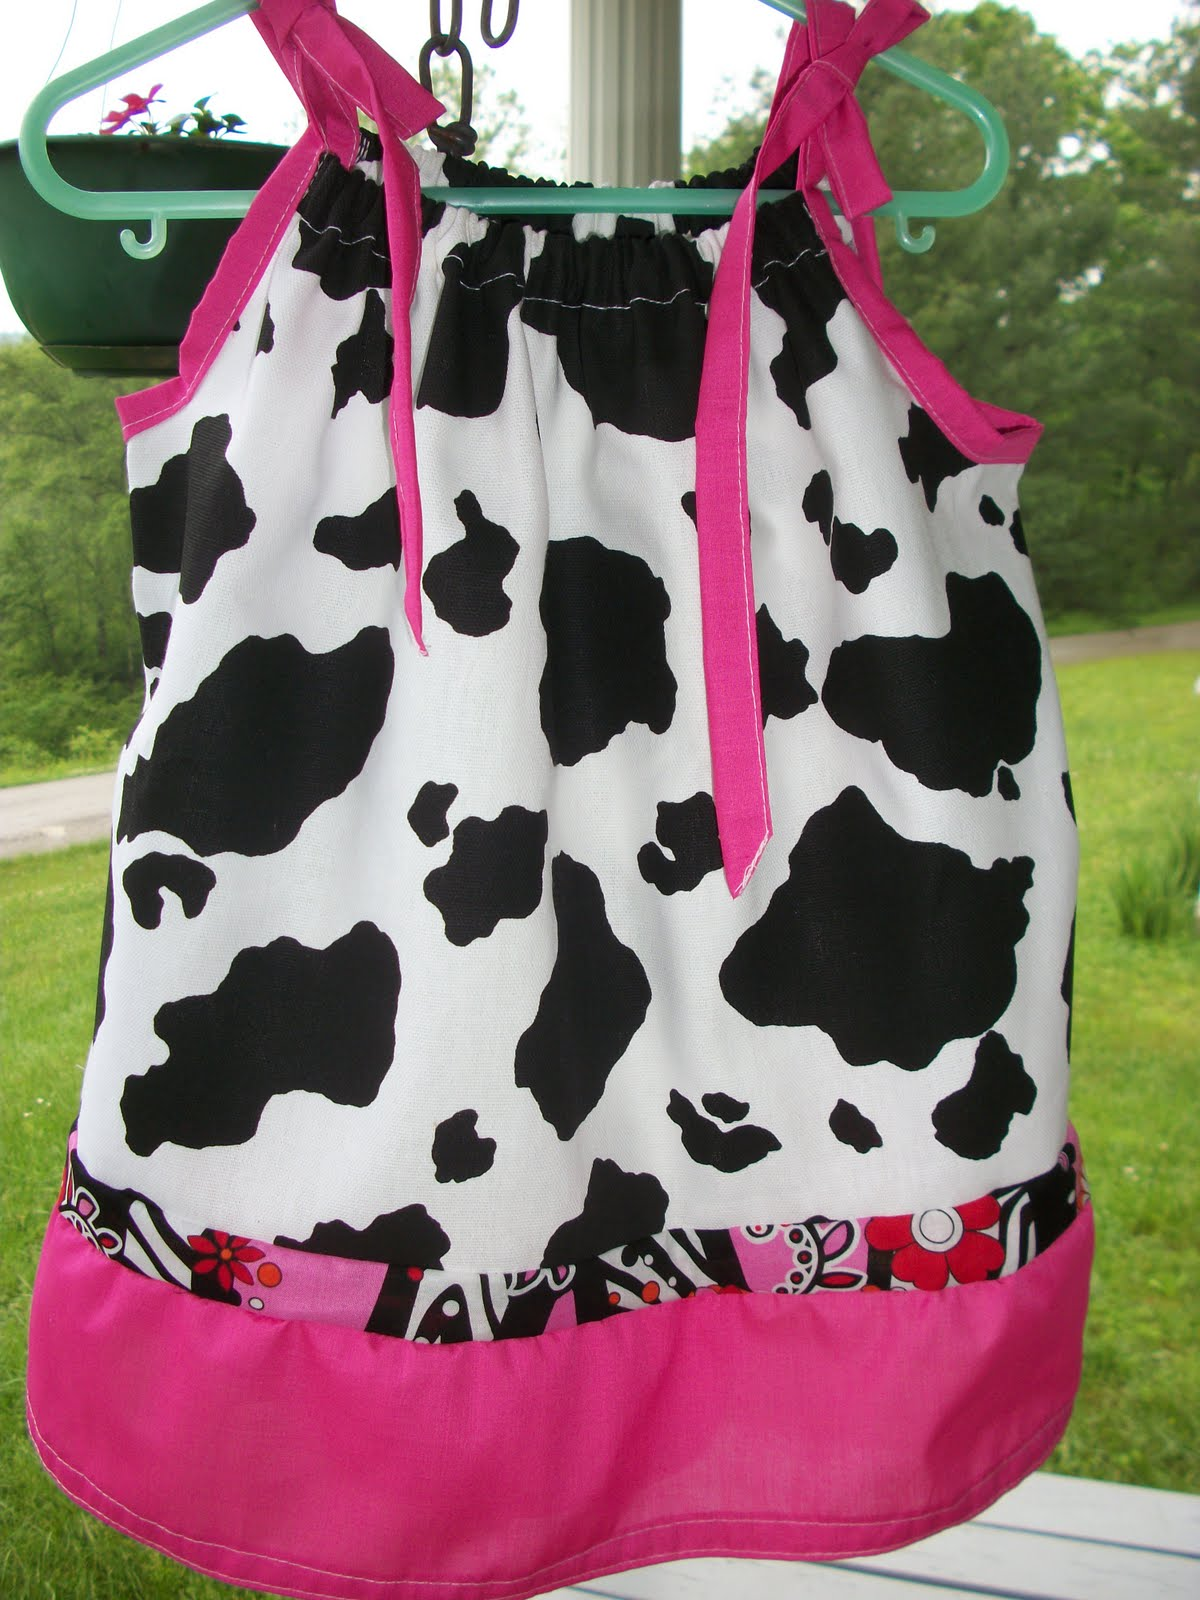 Creative Chevy05chick Sews Cow Print Hot Pink Amp Hot Pink